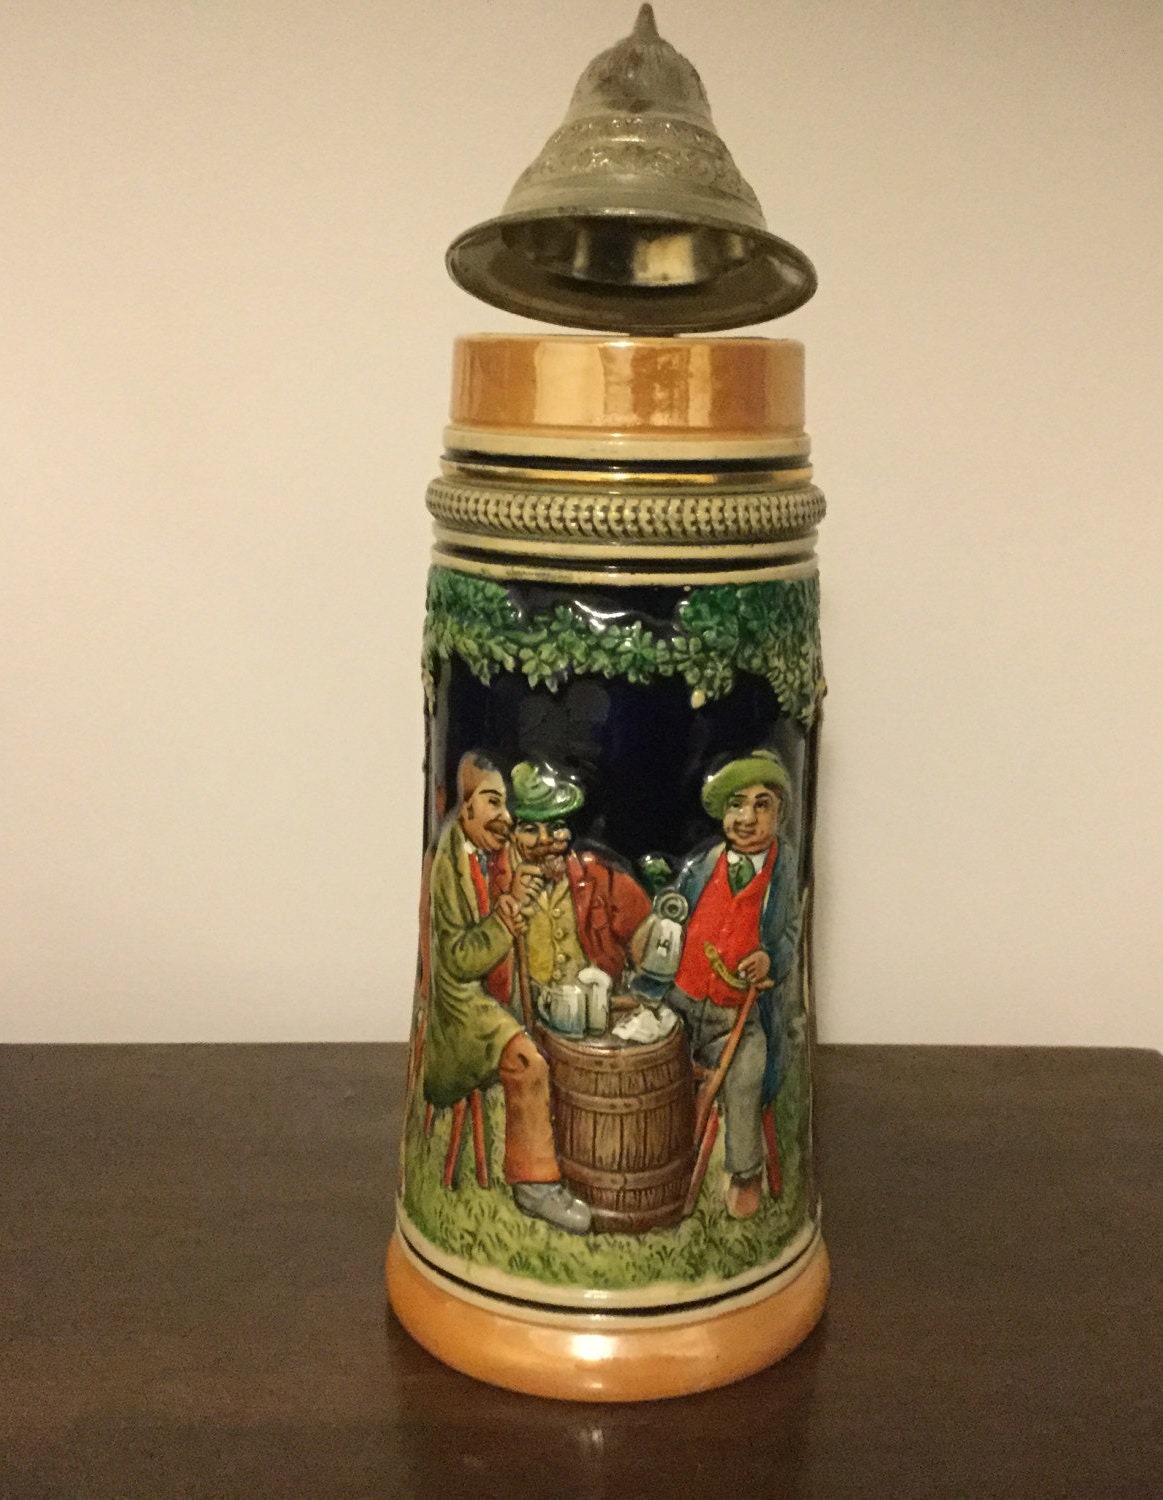 Vintage Gerz Gerzit West Germany Beer Stein Mug VgC West ... |Vintage West Germany Beer Steins